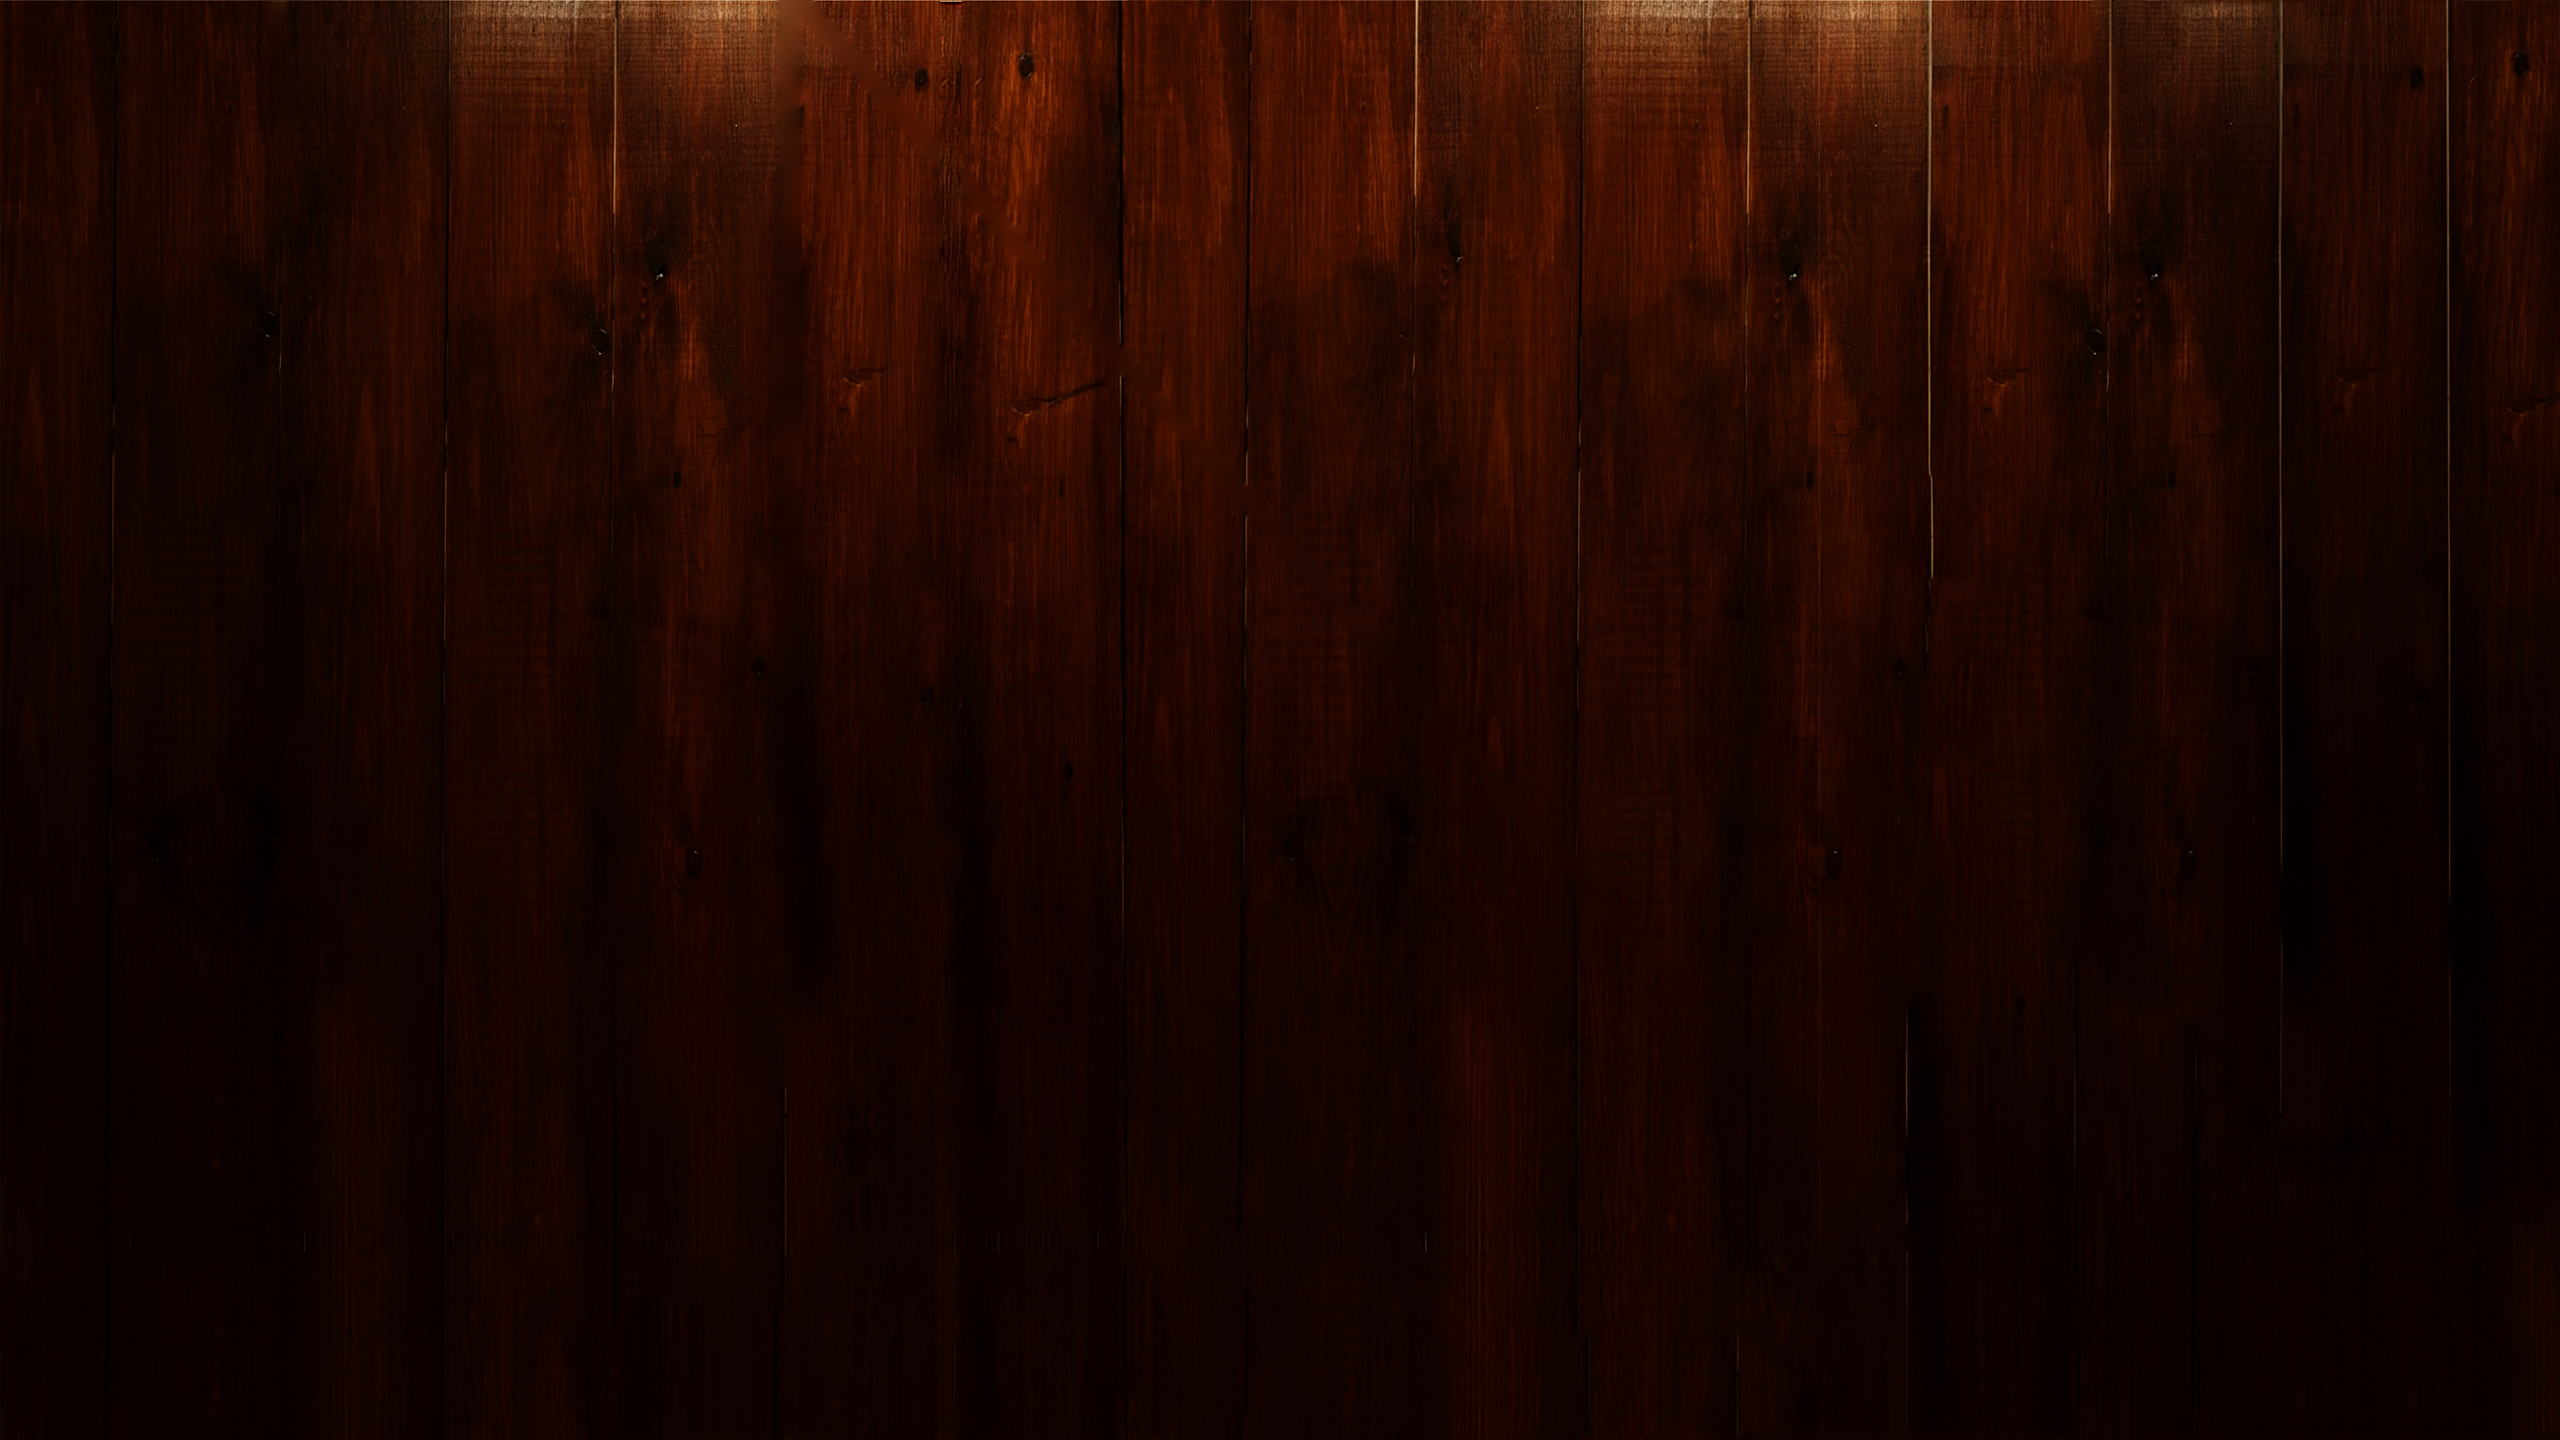 Holz full hd wallpaper and hintergrund 2560x1440 id 347127 for Full wall wallpaper